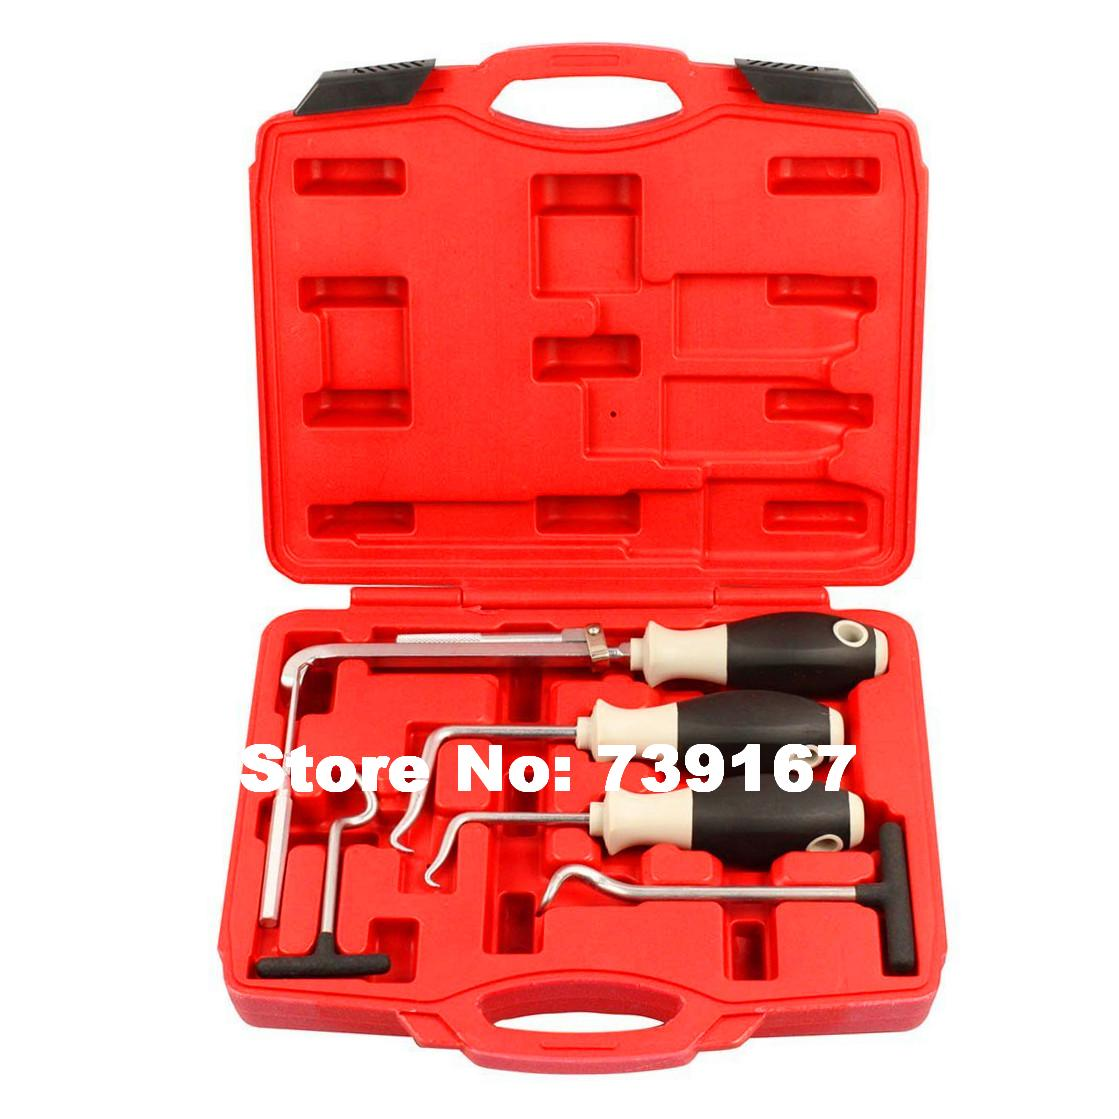 6PCS Car Seal And O-Rings Flexible Hose Pick Removal Tool Kit ST0103<br><br>Aliexpress